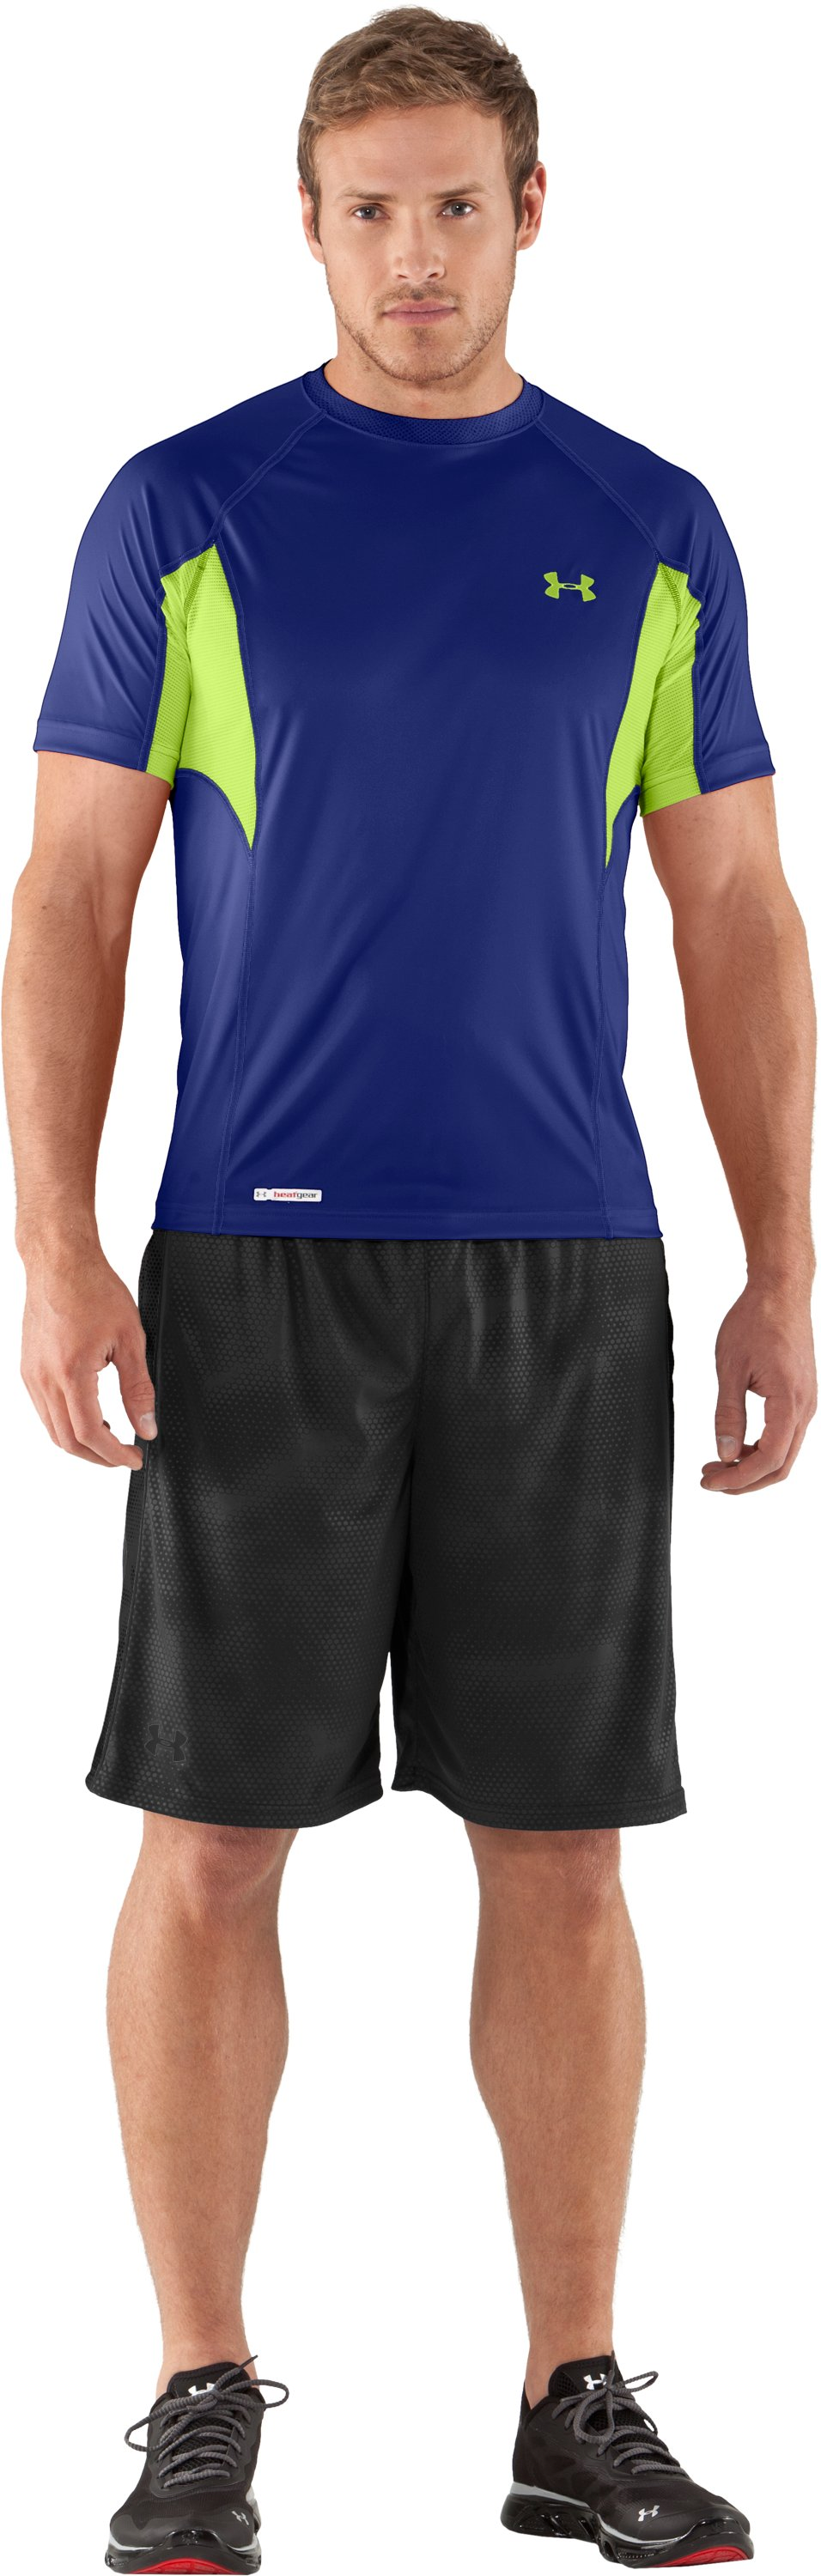 Men's HeatGear® Flyweight Fitted Short Sleeve, Royal